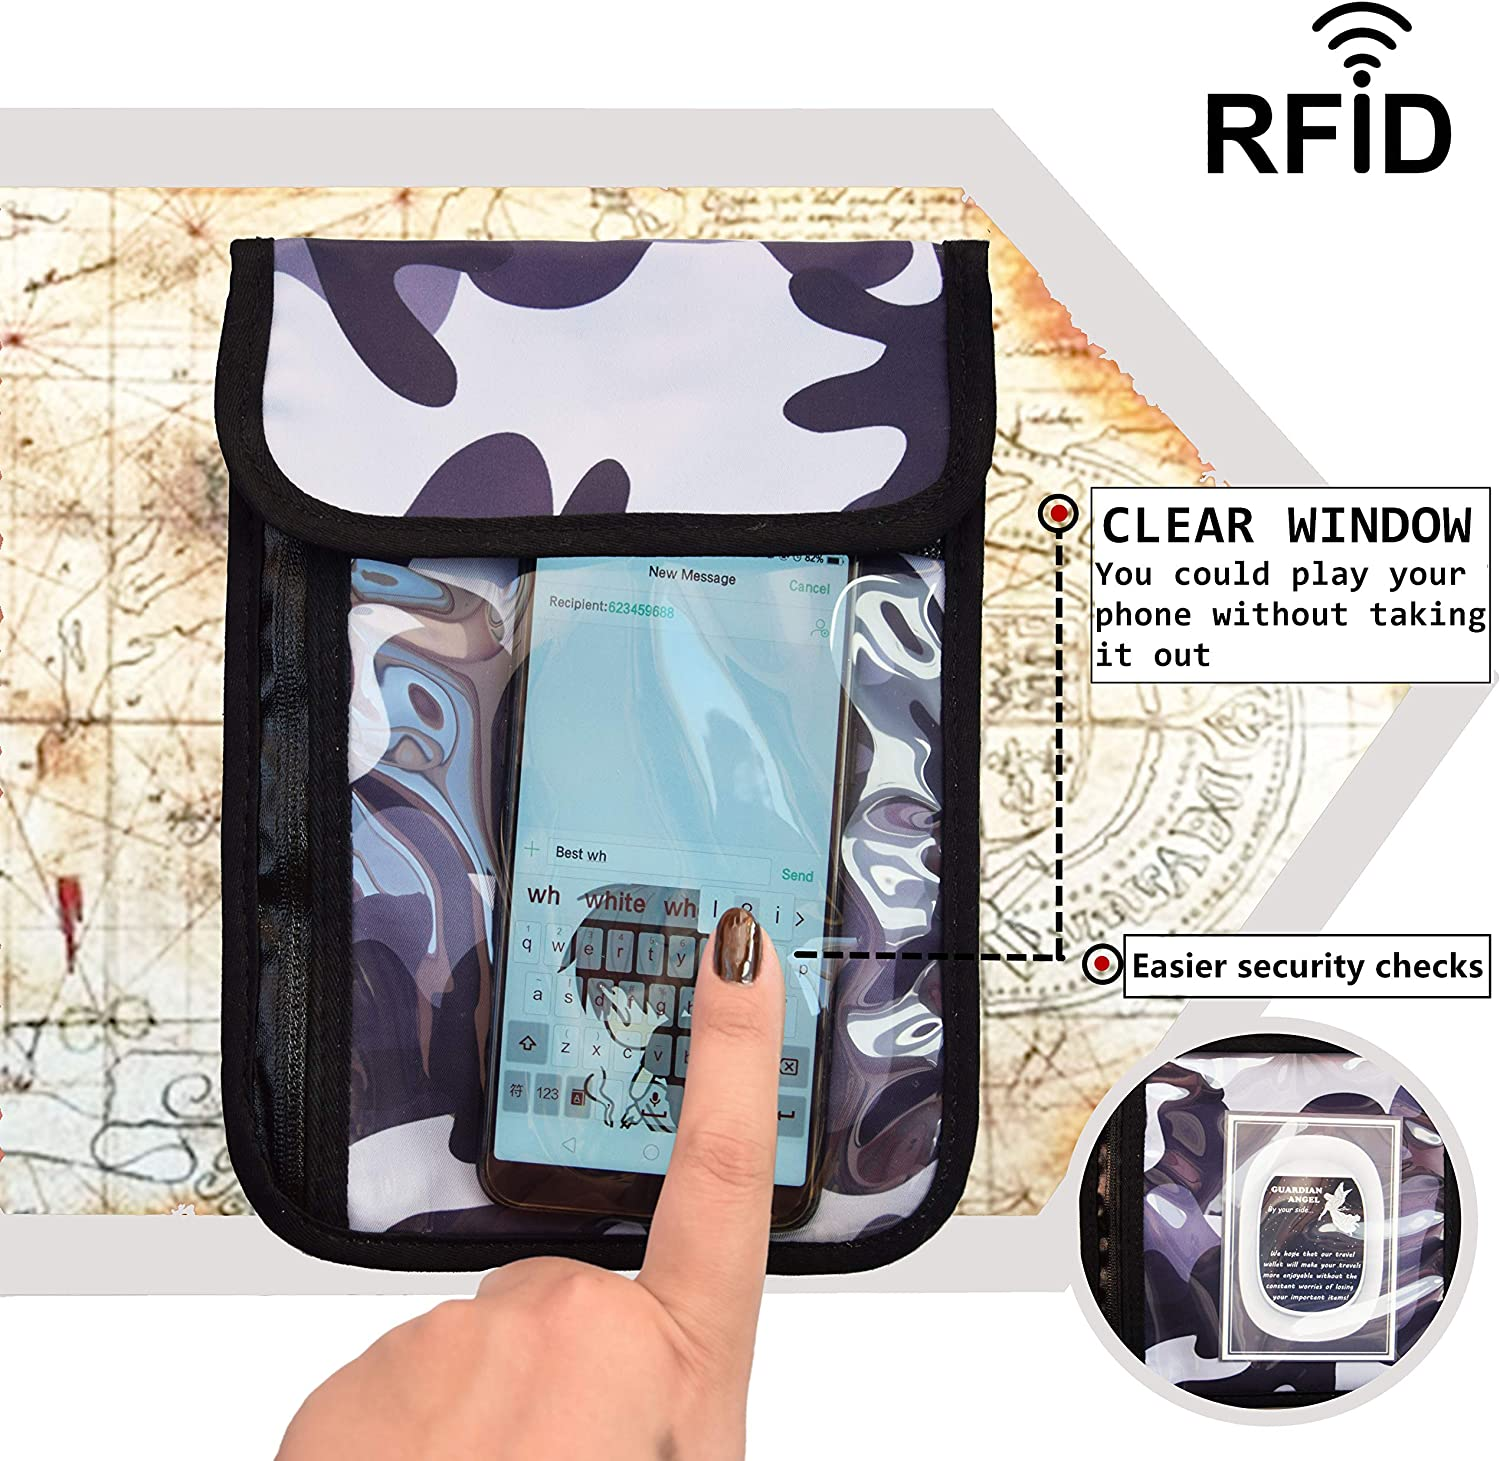 Travel Neck Wallet Neck Pouch with RFID Blocking Black Concealed Passport Holder to Keep Your Cash And Documents Safe When Traveling